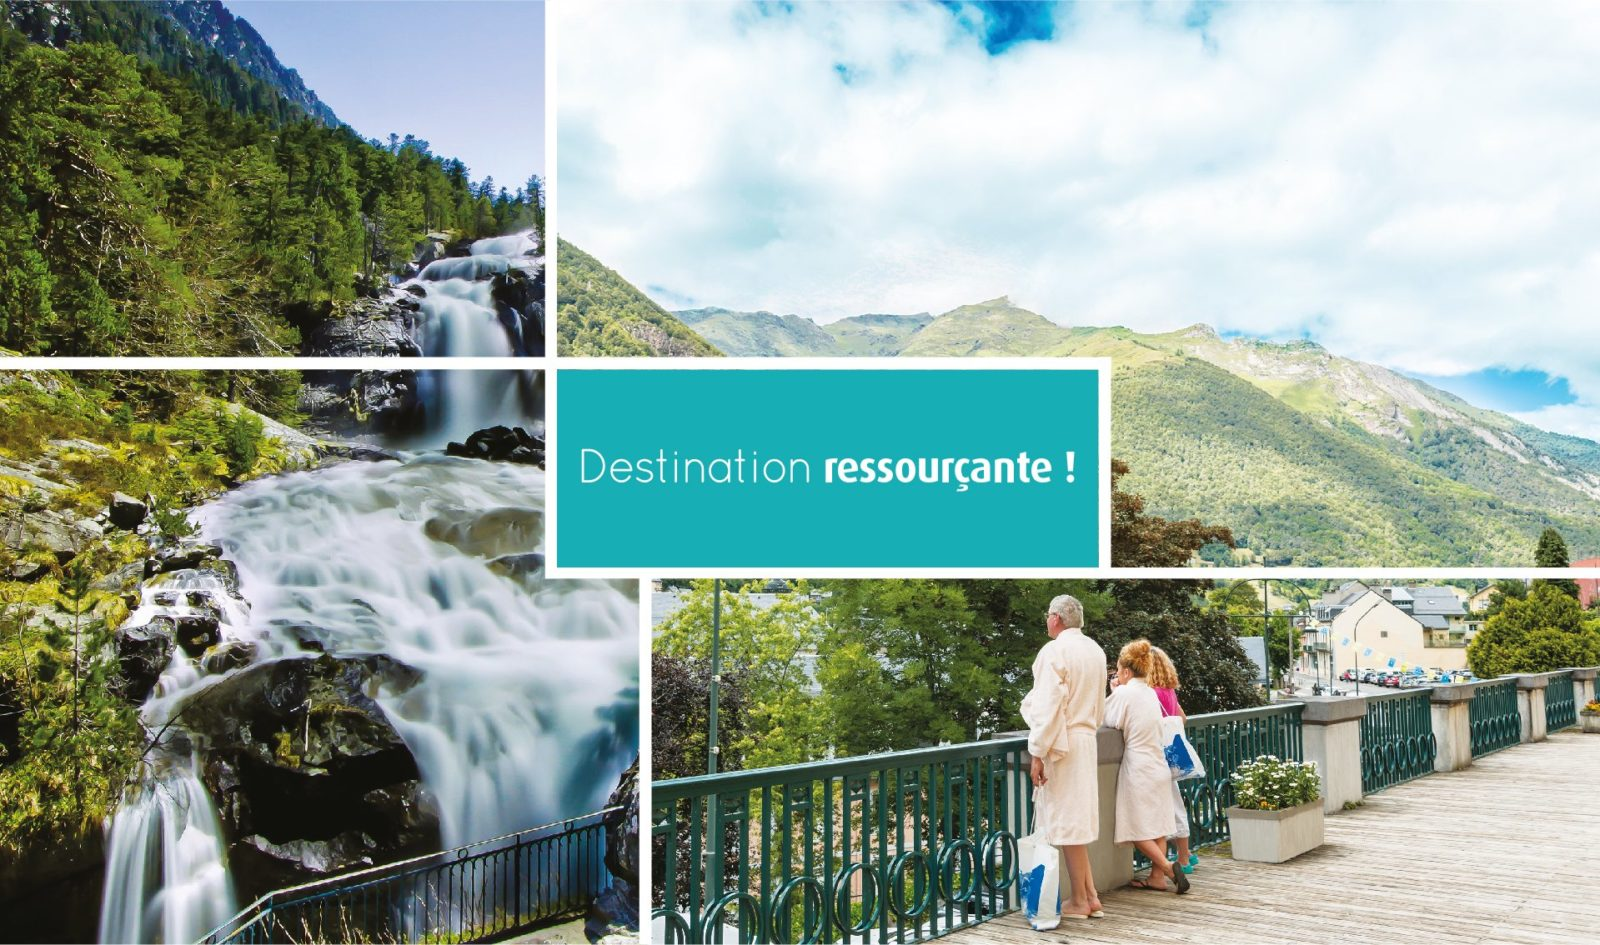 Les thermes de Cauterets : destination ressourçante !